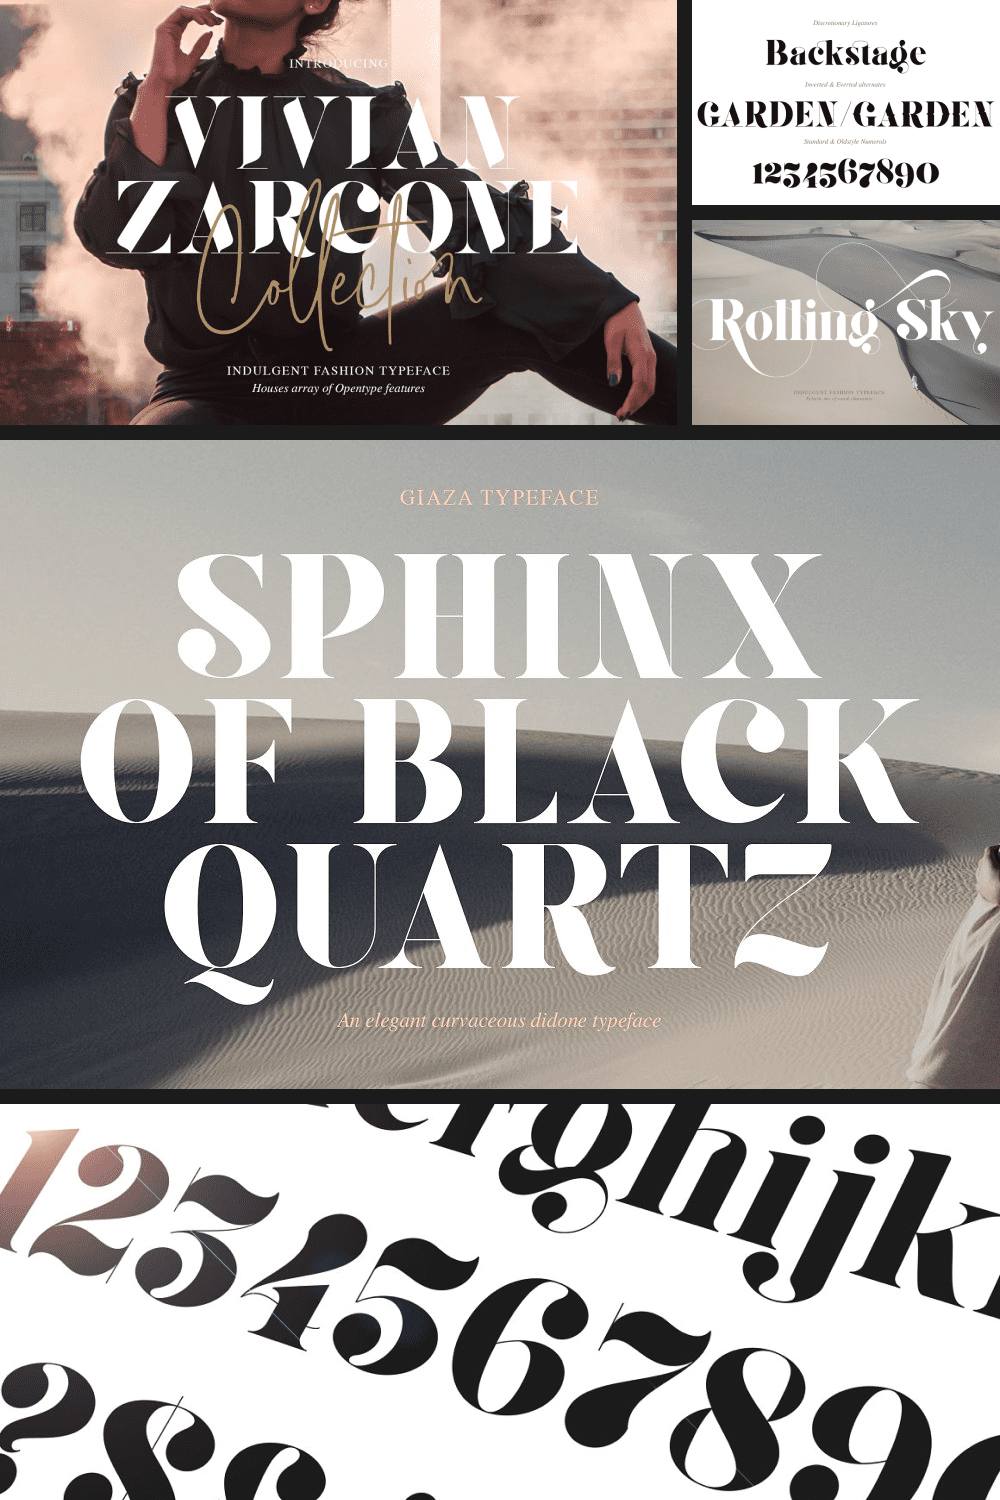 This is a desert font. His style and creativity will diversify any text and add flavor to the brand.